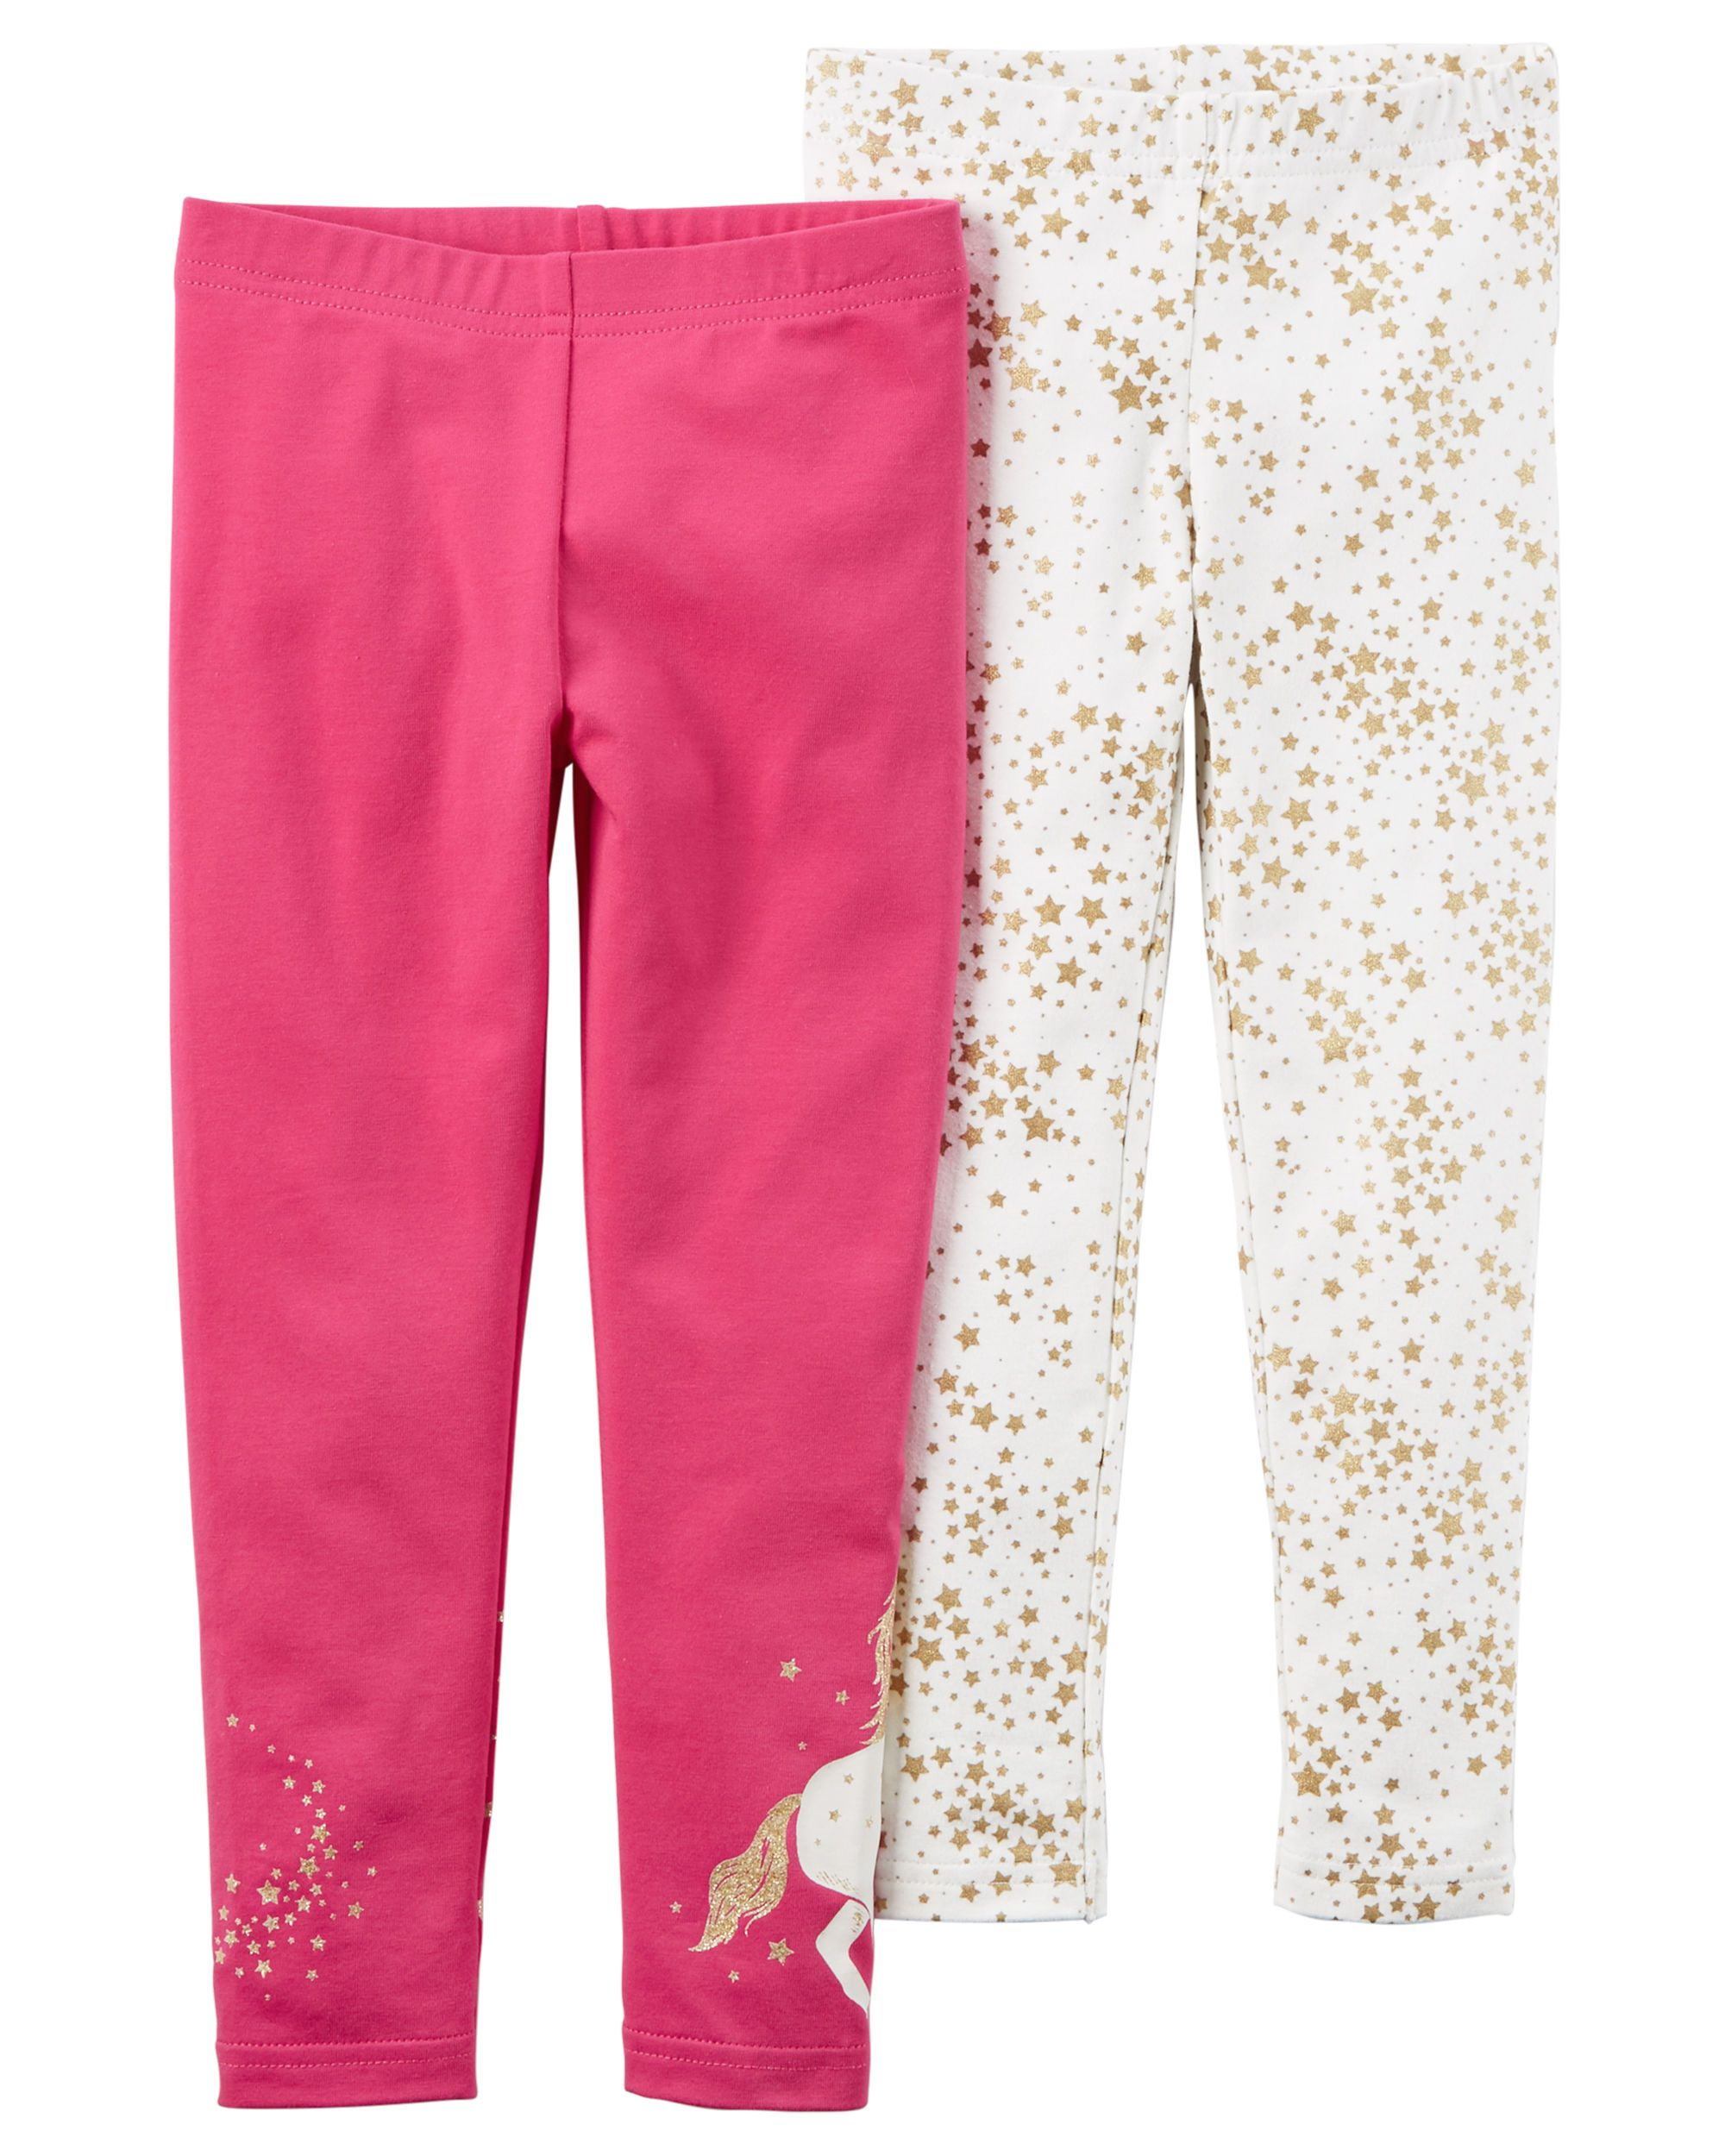 286cefd9a Toddler Girl 2-Pack Leggings from Carters.com. Shop clothing & accessories  from a trusted name in kids, toddlers, and baby clothes.